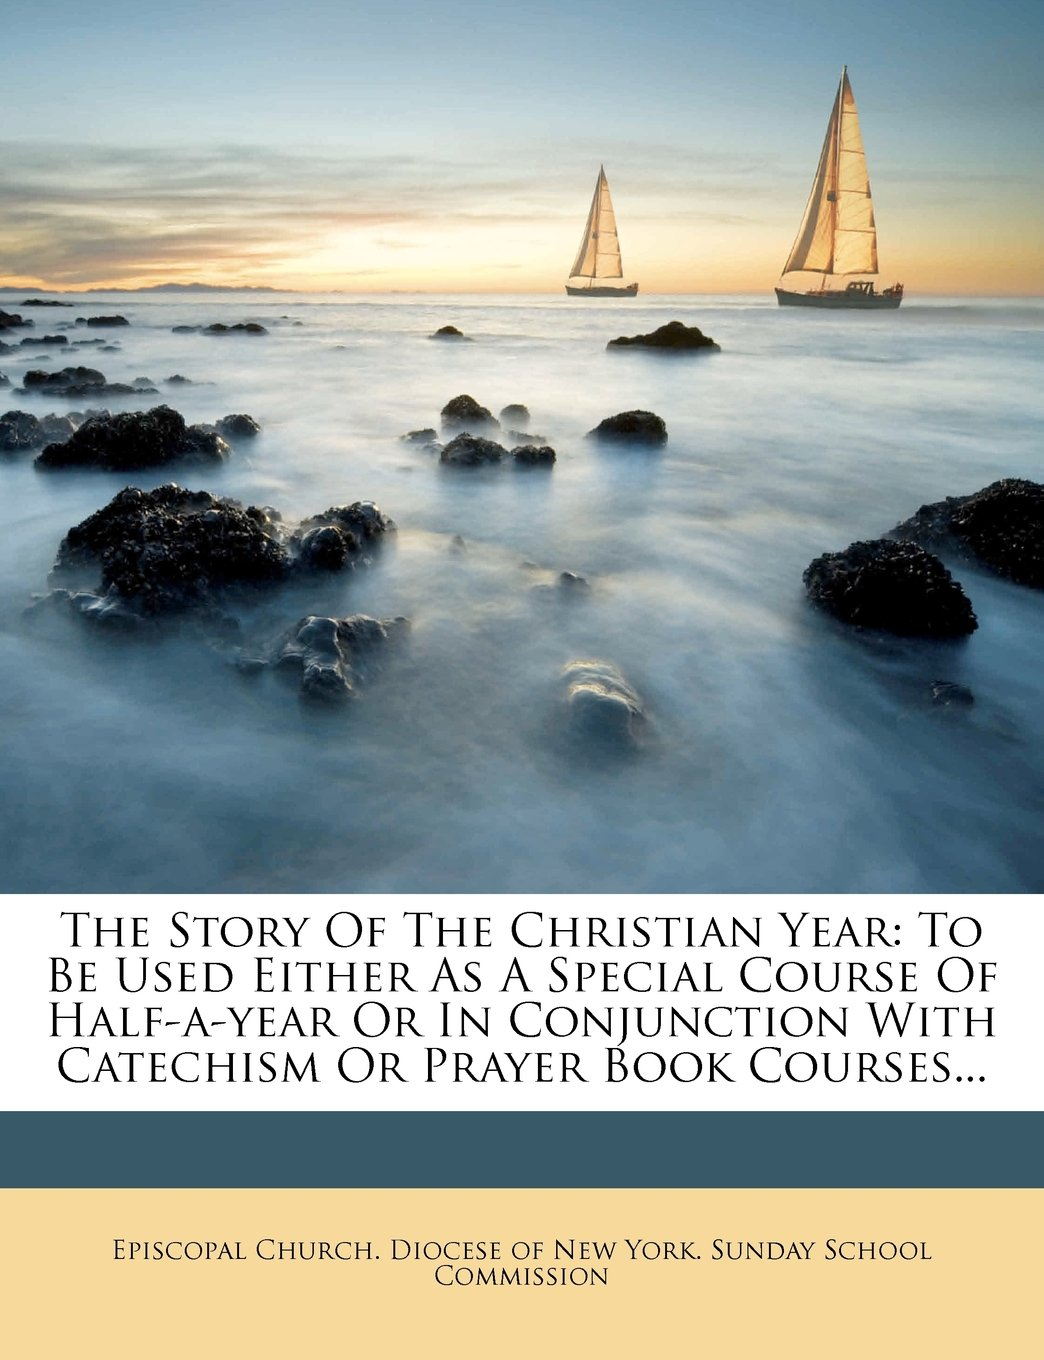 Download The Story Of The Christian Year: To Be Used Either As A Special Course Of Half-a-year Or In Conjunction With Catechism Or Prayer Book Courses... PDF